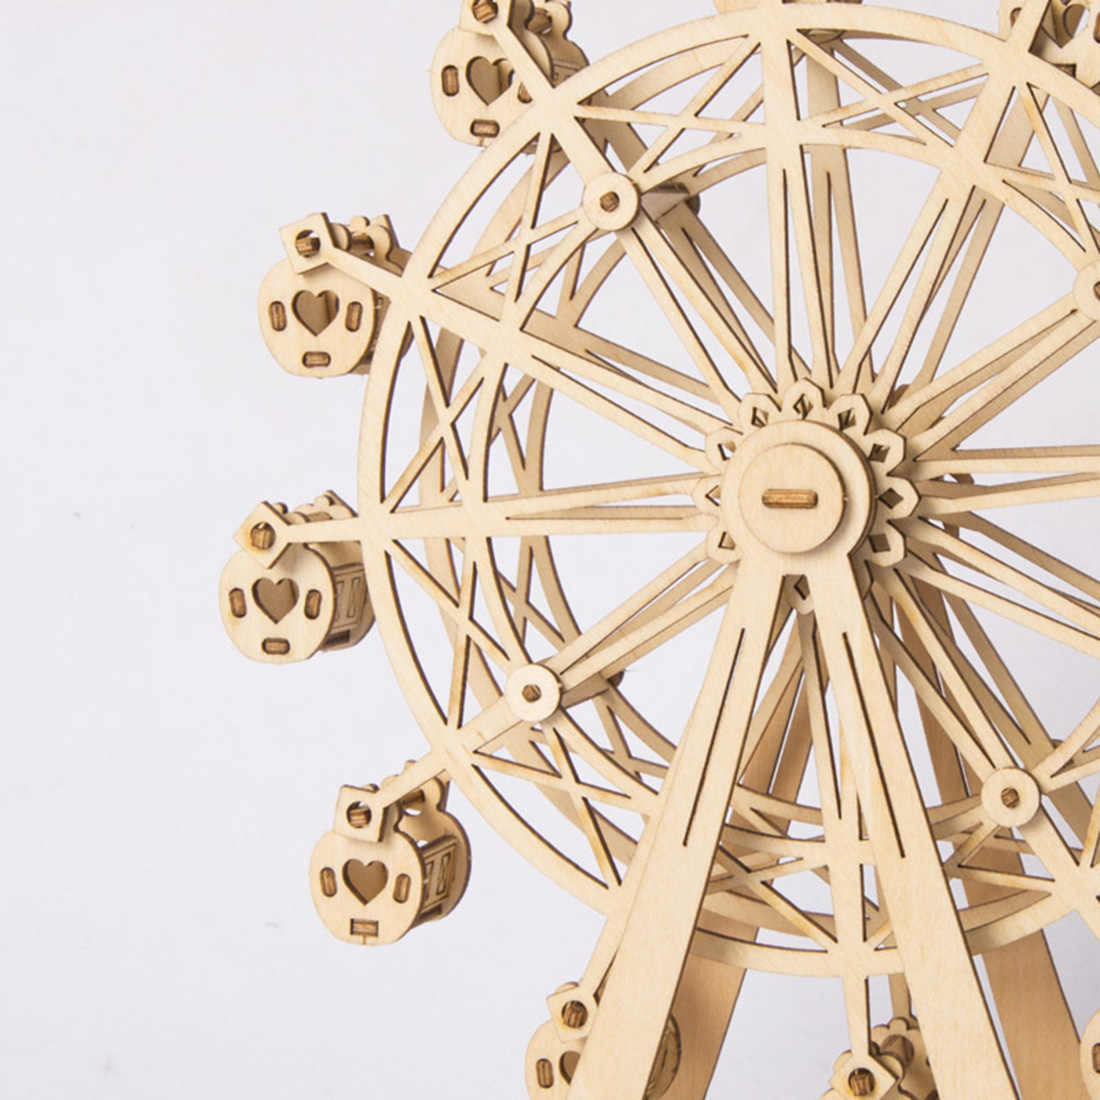 Ferris Wheel 3D Movement Assembled Wooden Painting Jointed Model Steam Stem Toys Learning Toy For Kid Christmas Gifts